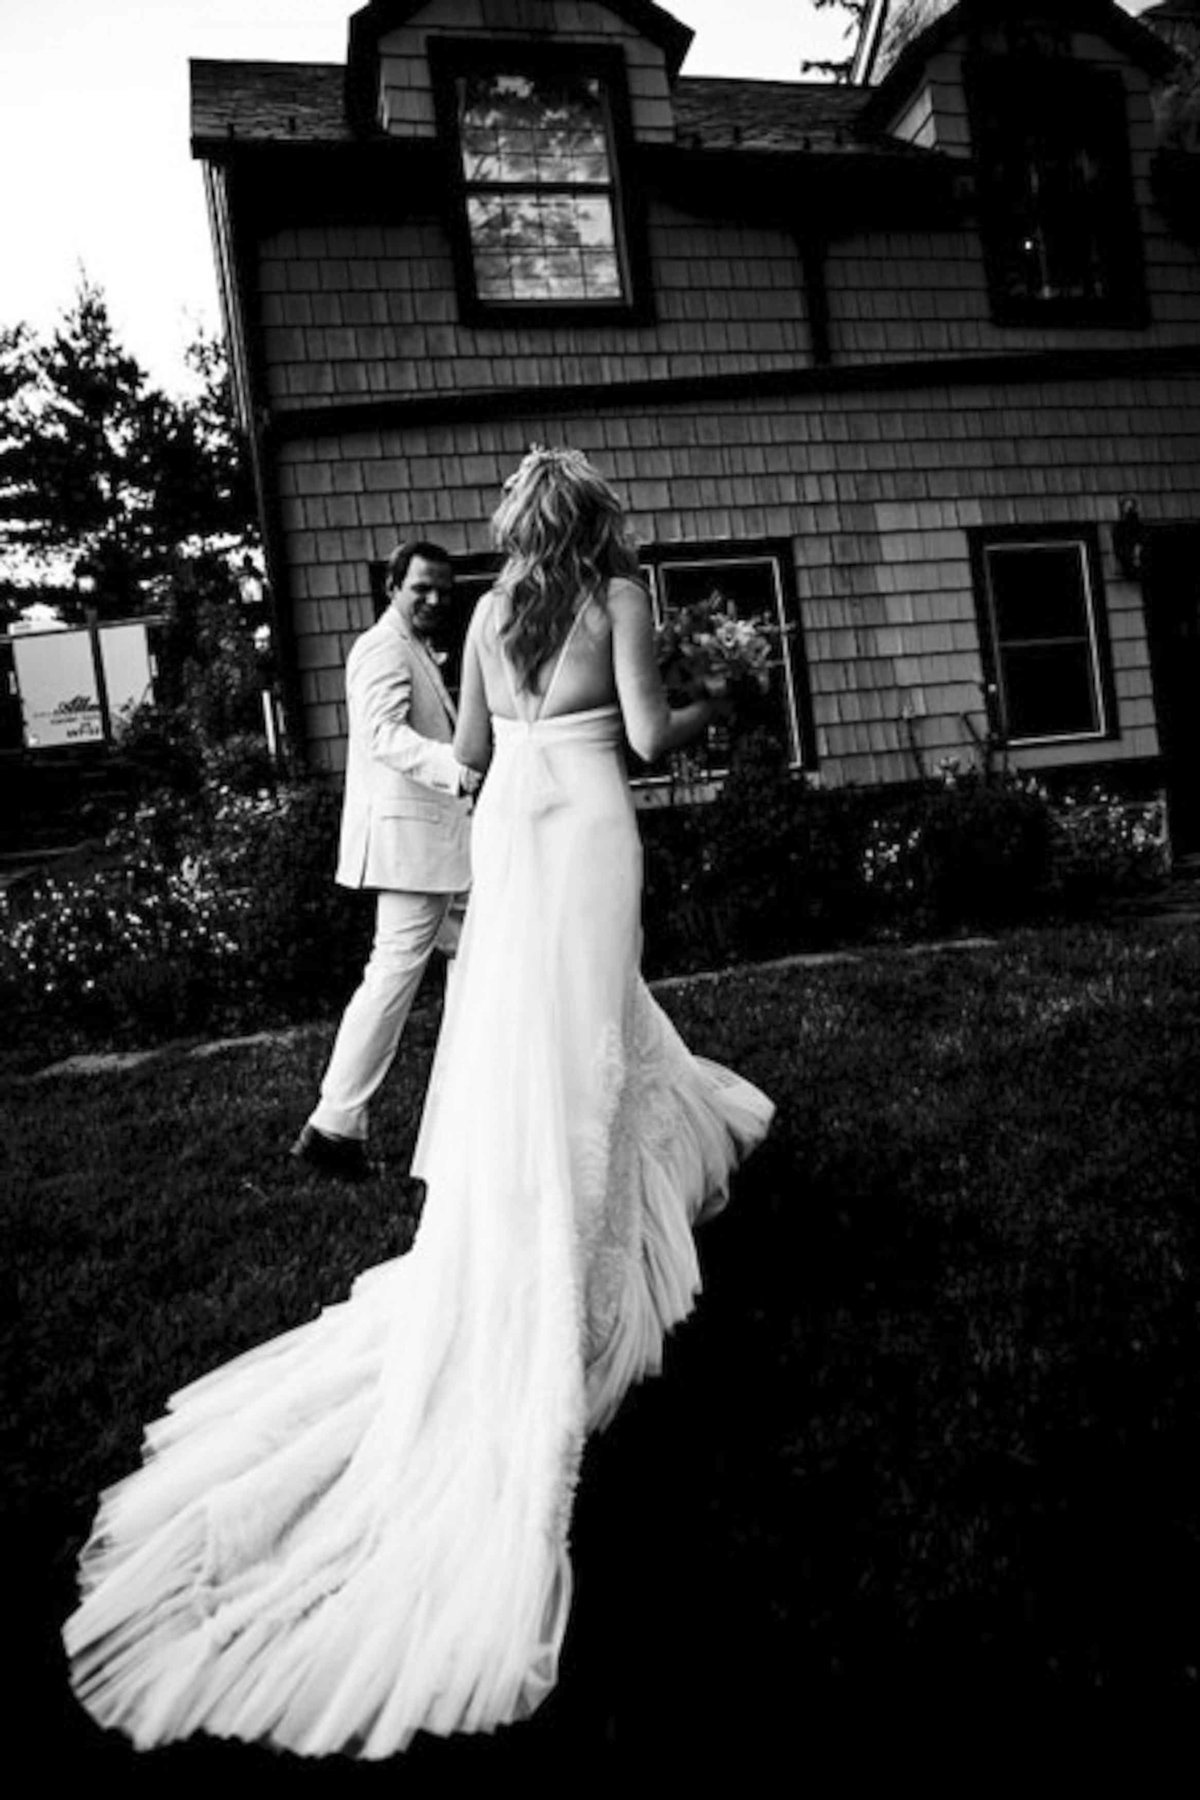 pittsburgh_wedding_046